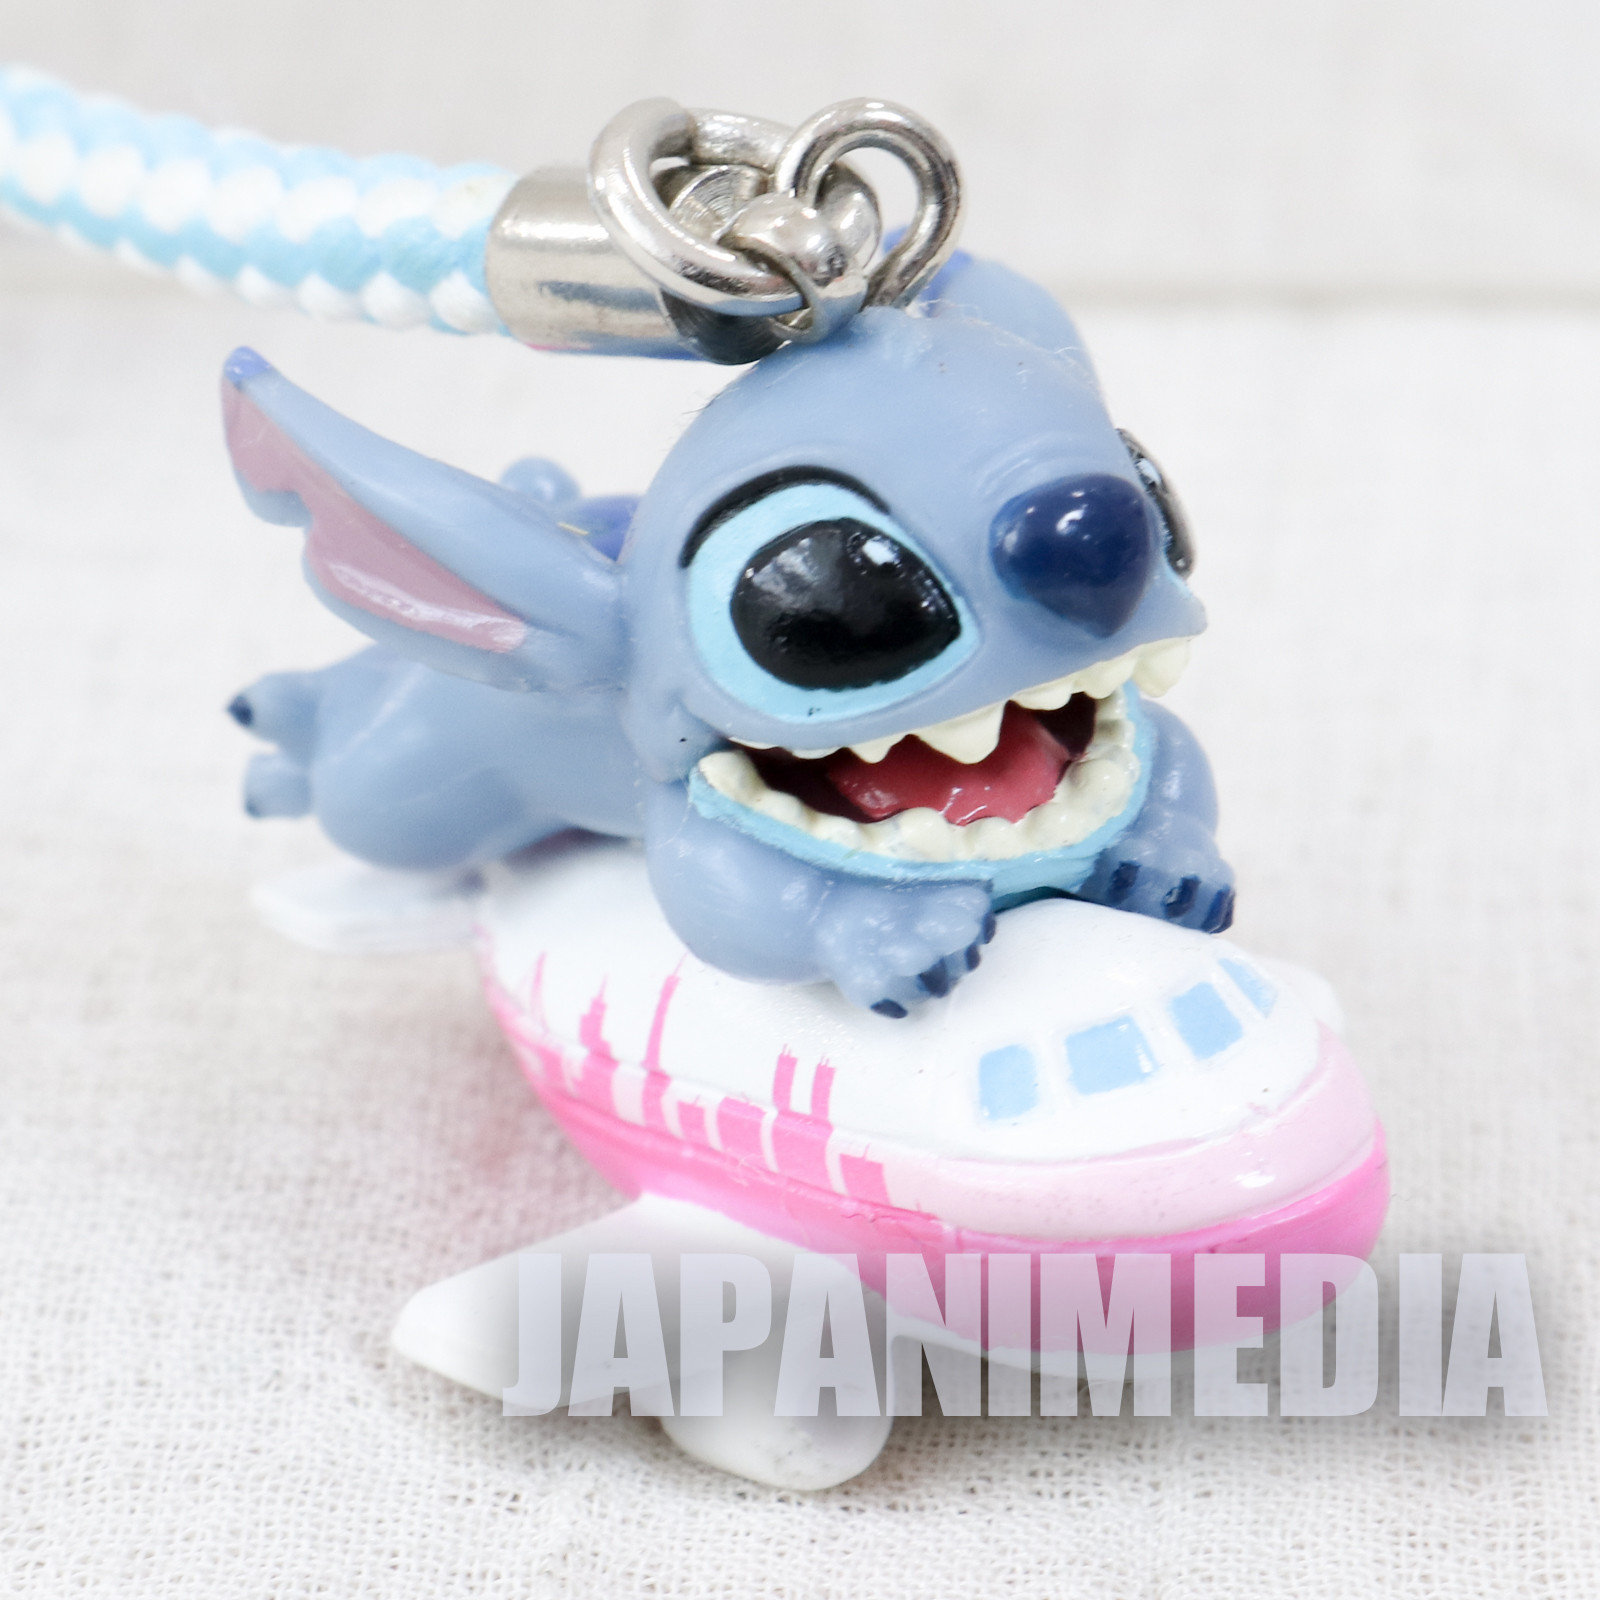 Disney Stitch Mascot Figure Strap Airport Exclusive Haneda ver. JAPAN ANIME